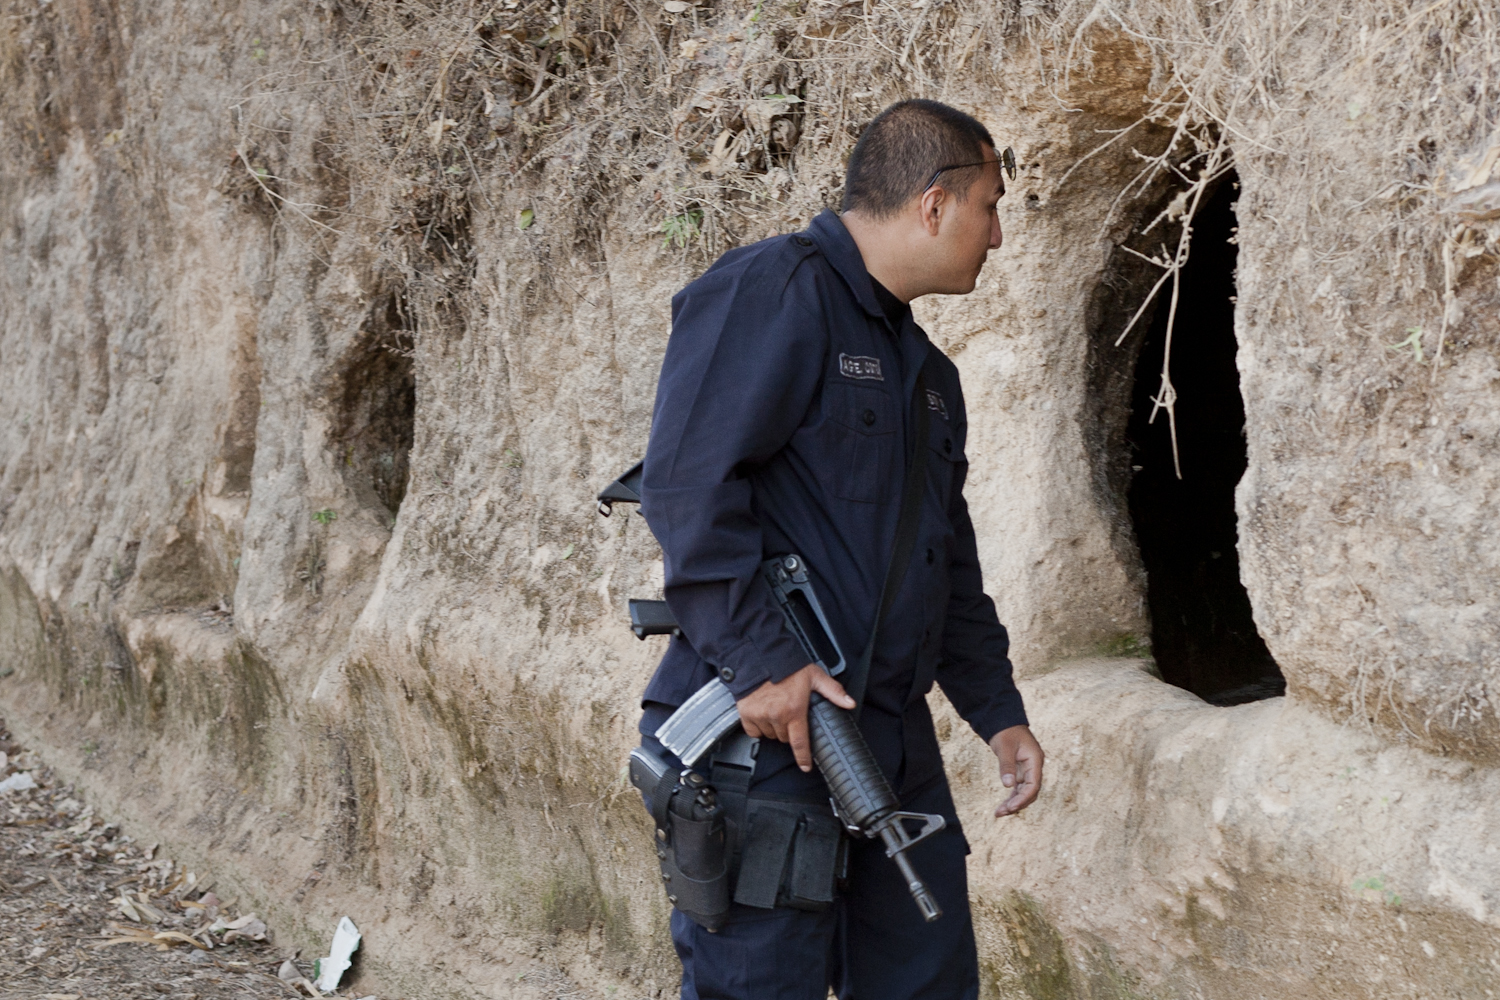 A police officer examines a hole in the road wall, carved during the  military invasion of the town. Civilian families used them as makeshift bomb  shelters for their children, to protect them from the 500-pound  explosives dropped by government planes.